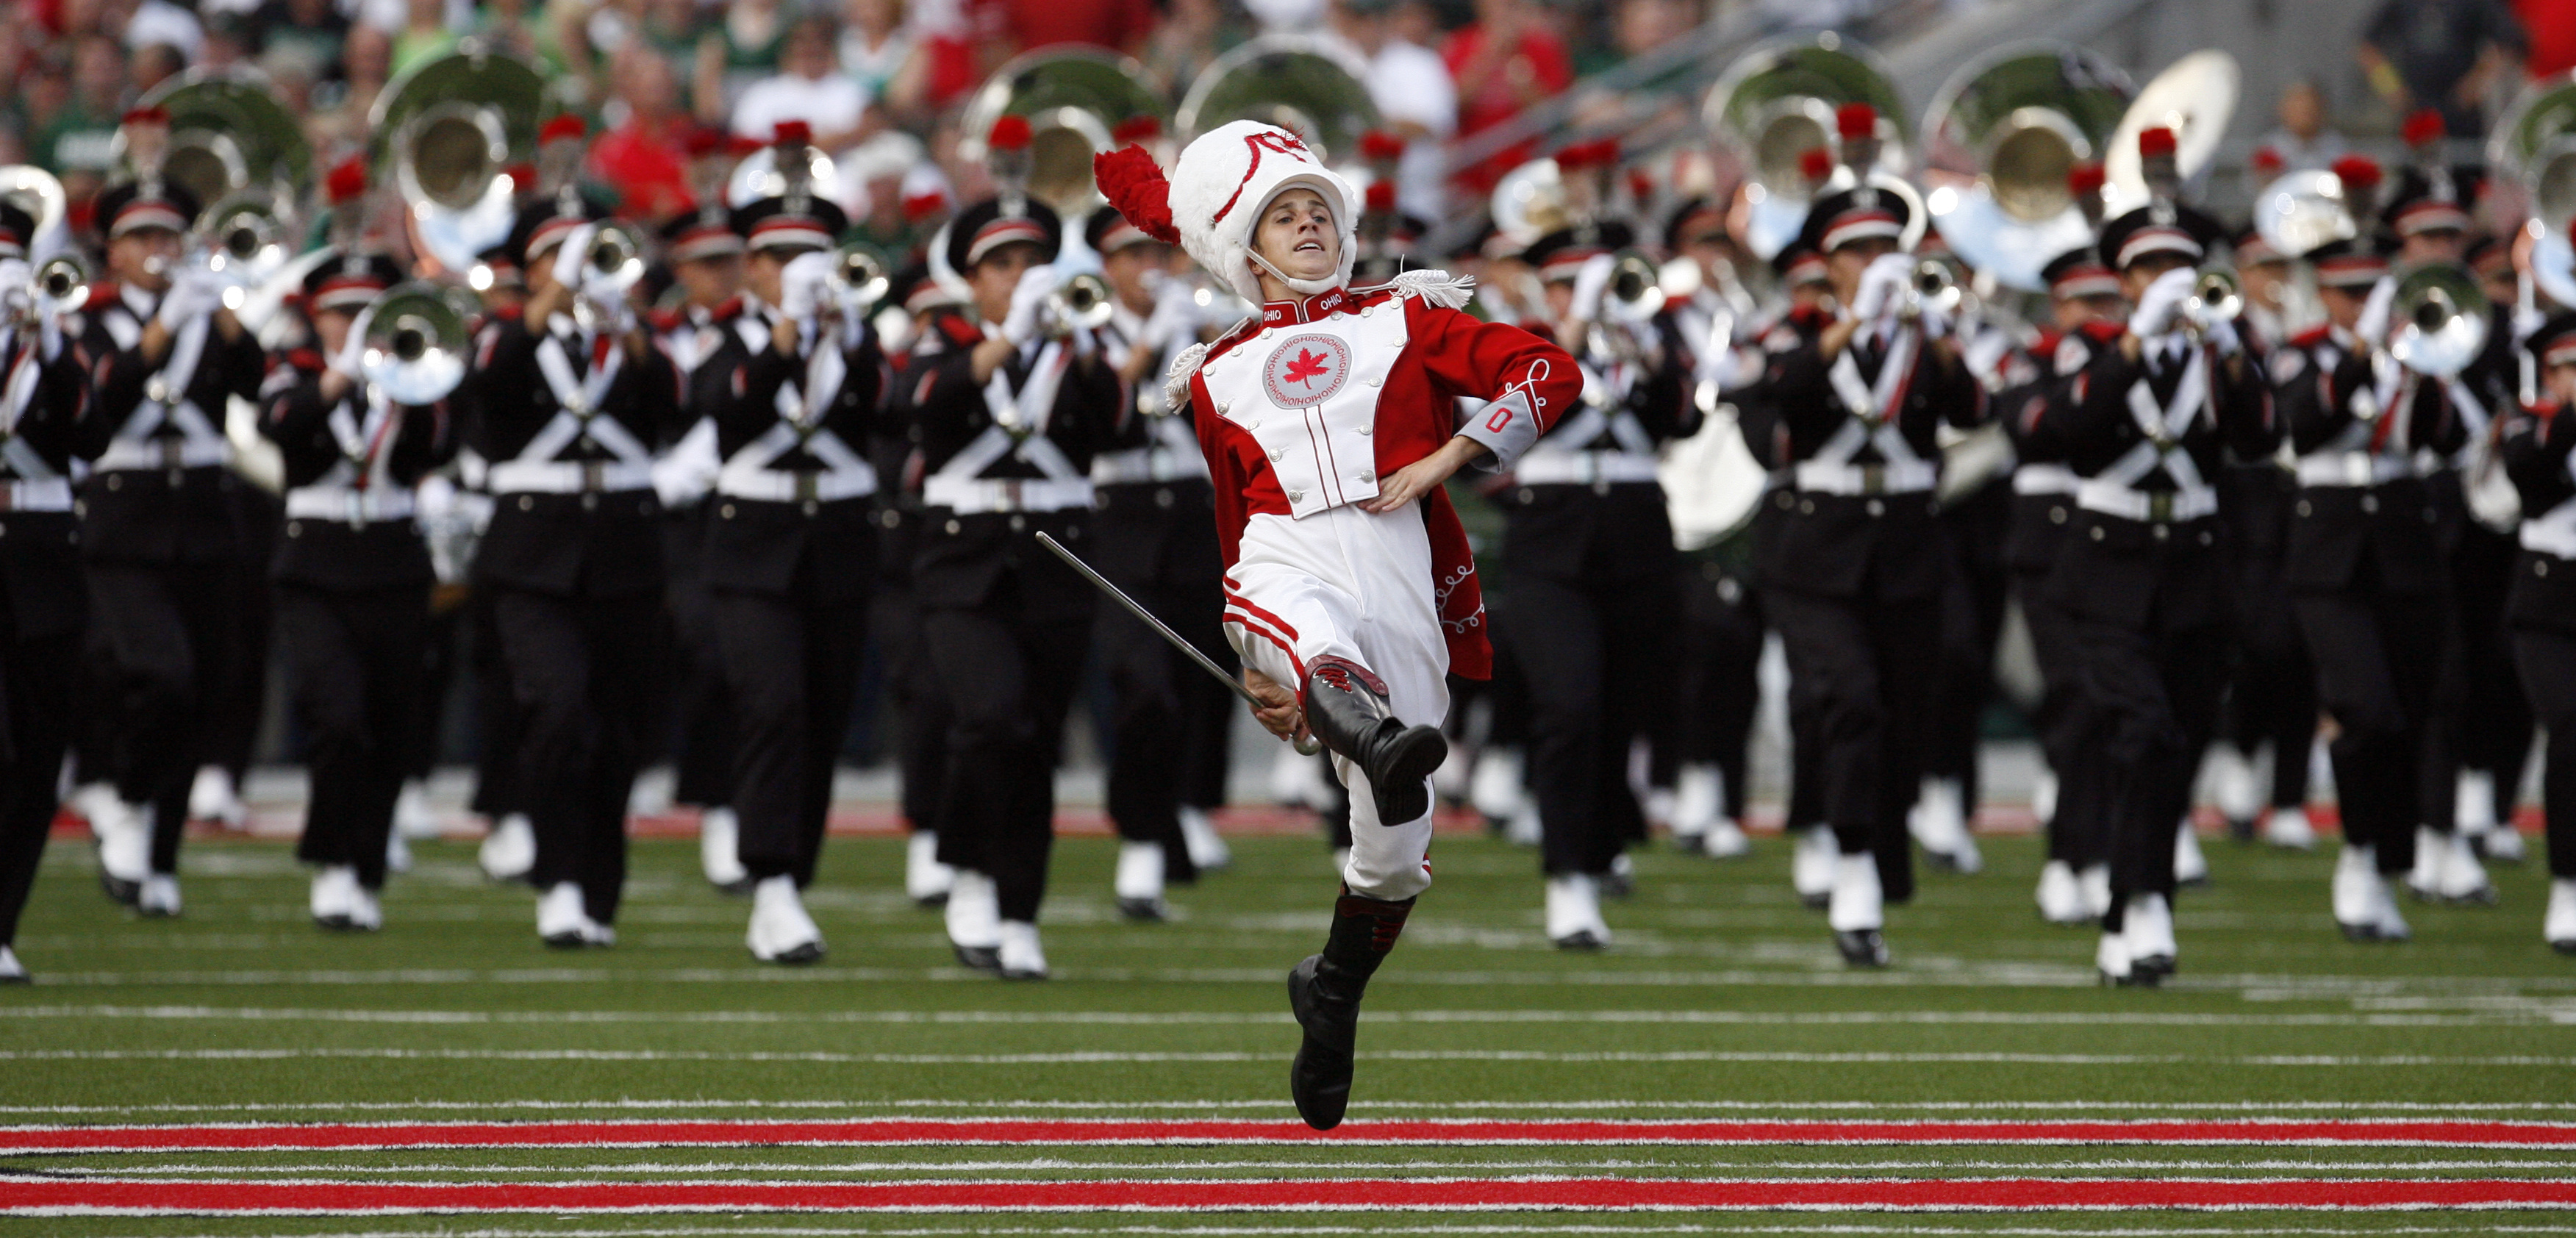 Ohio State Marching Band Culture | The Ohio State University